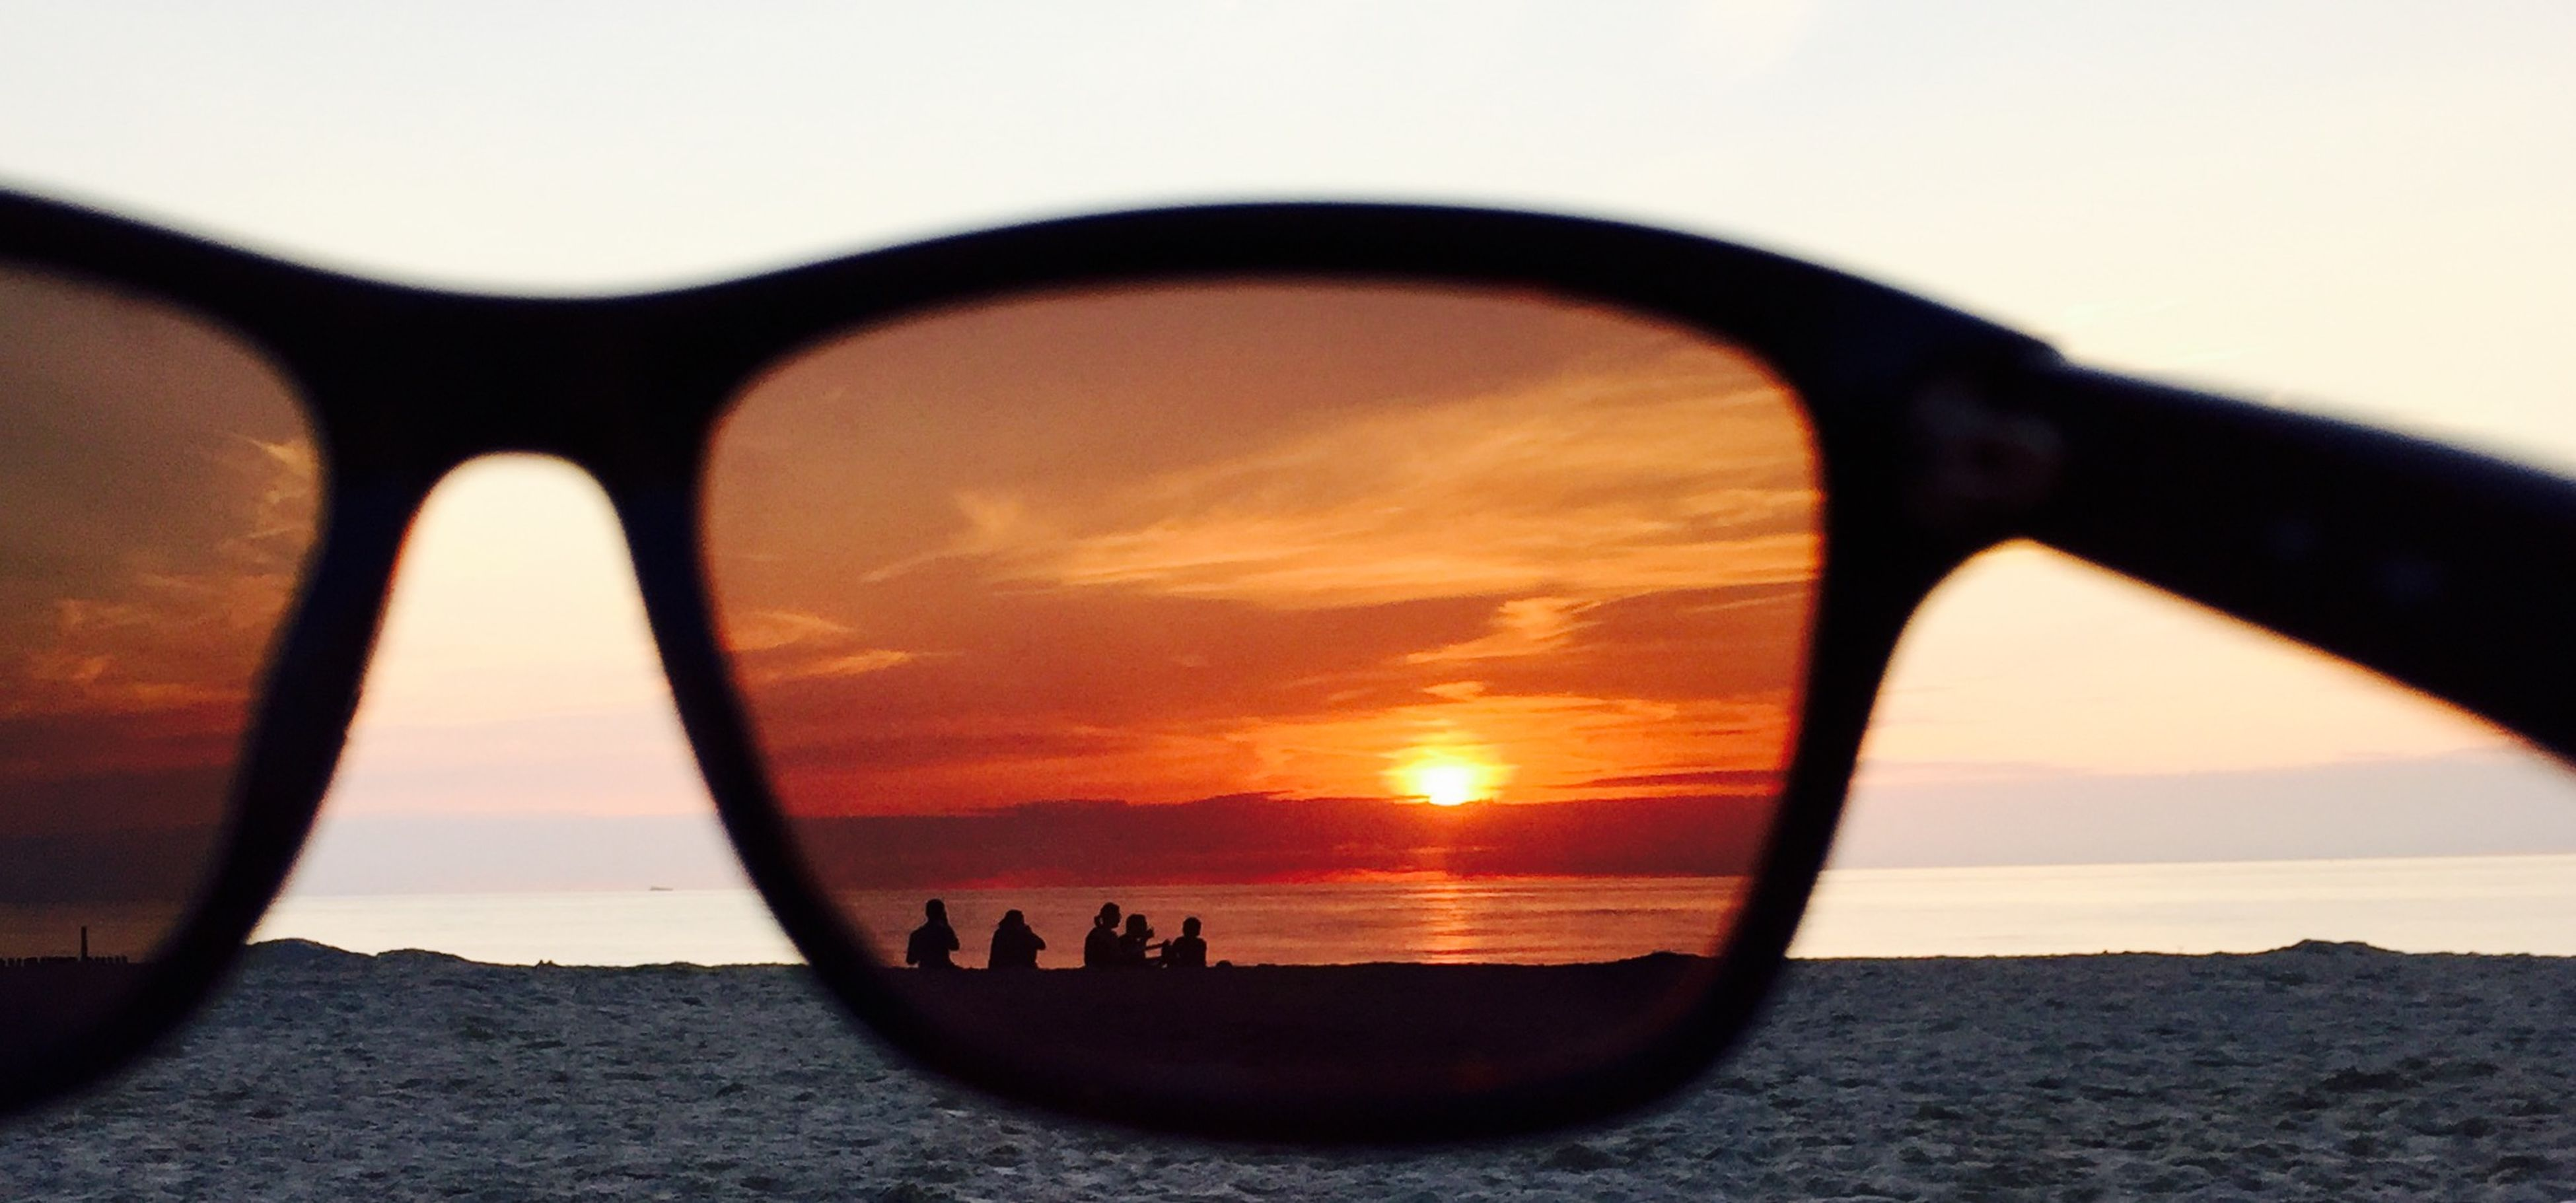 🌅Summer sunset🌅 Summer Beach Sunset Glasses